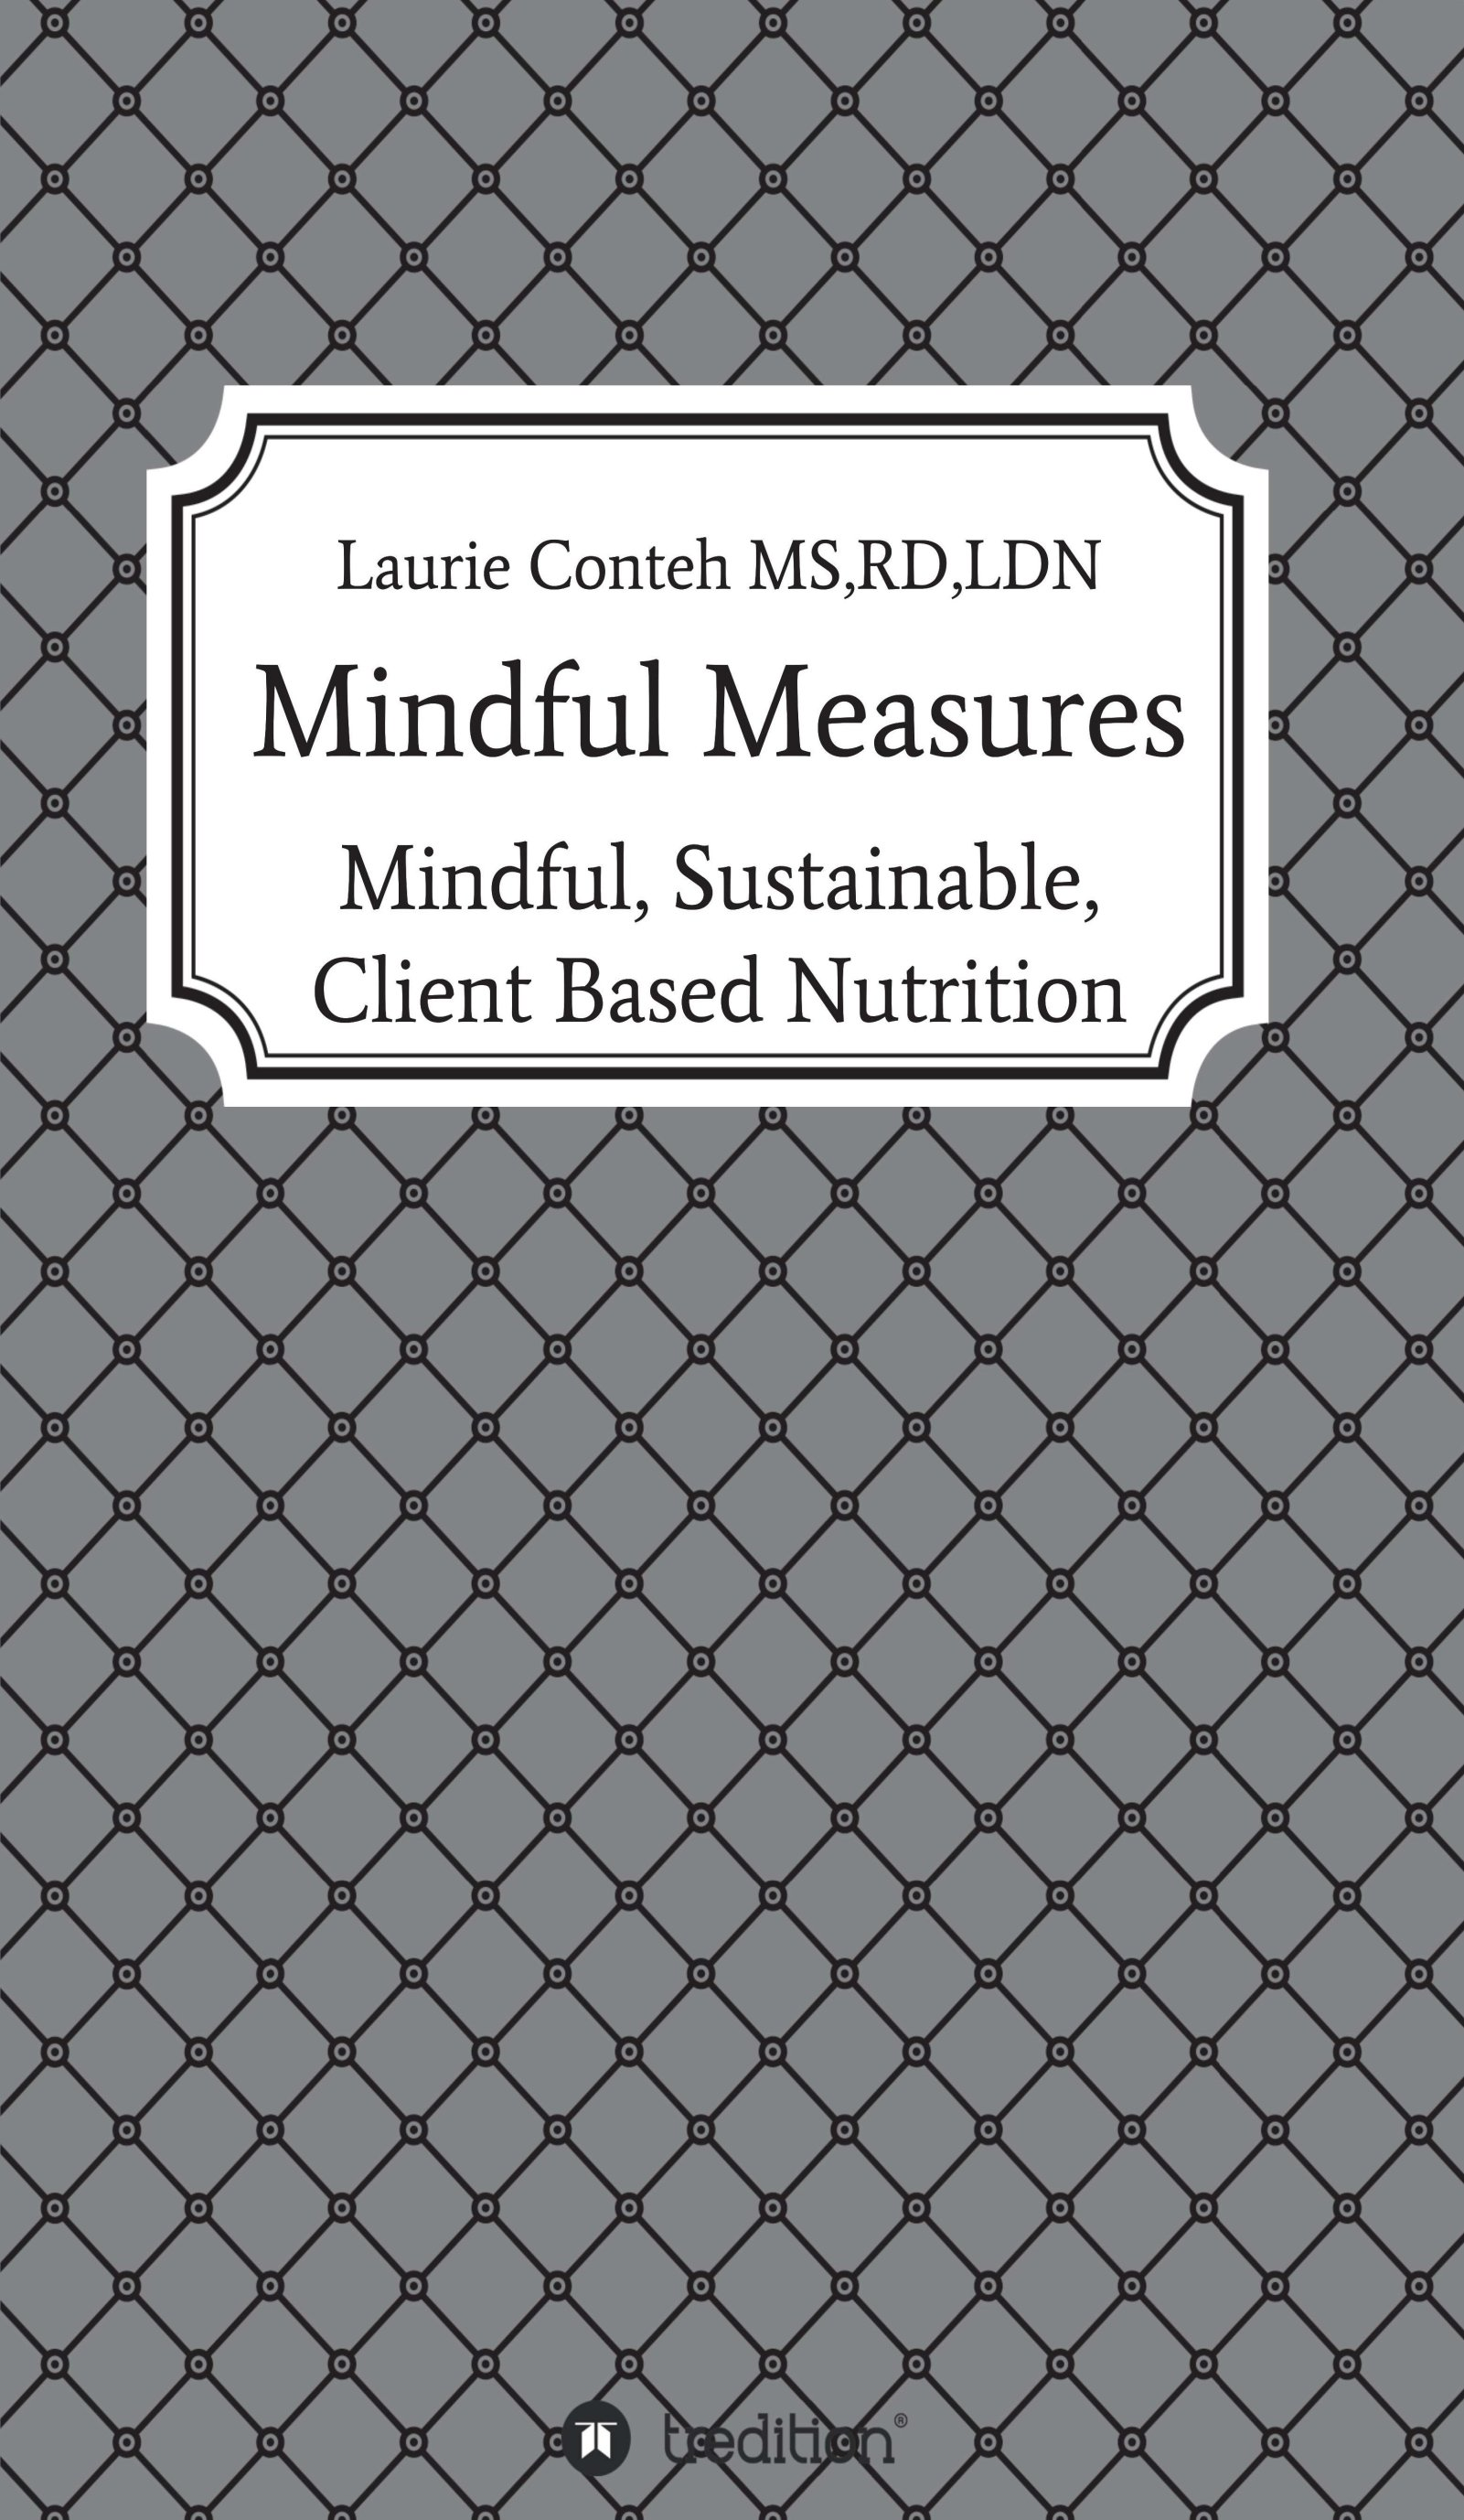 Mindful Measures – Mindful, Sustainable, Client Based Nutrition